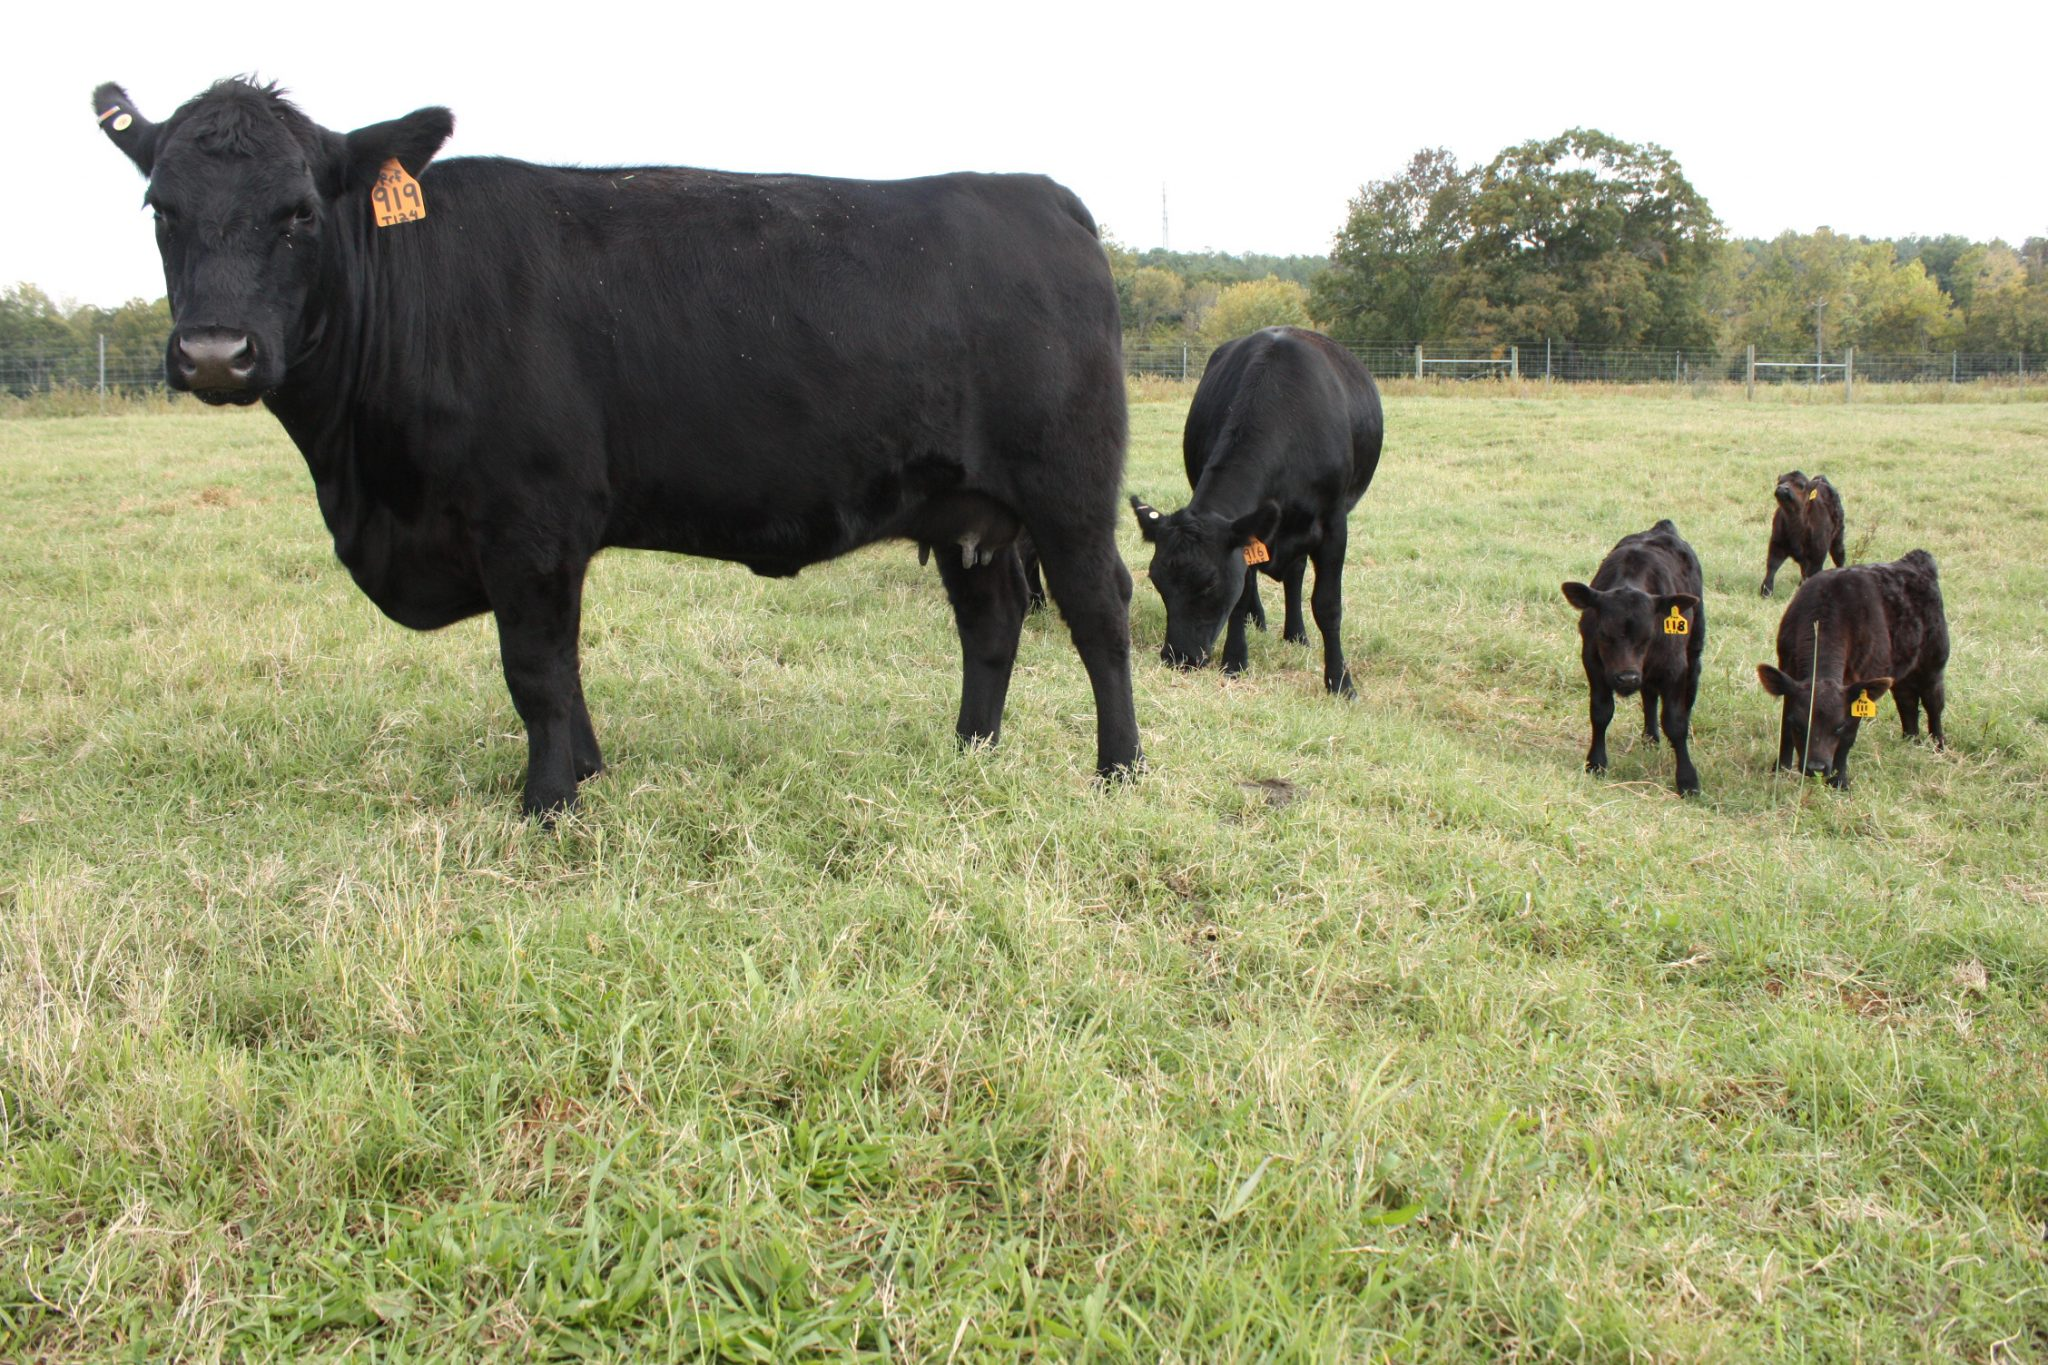 Cows and calves in a pasture.